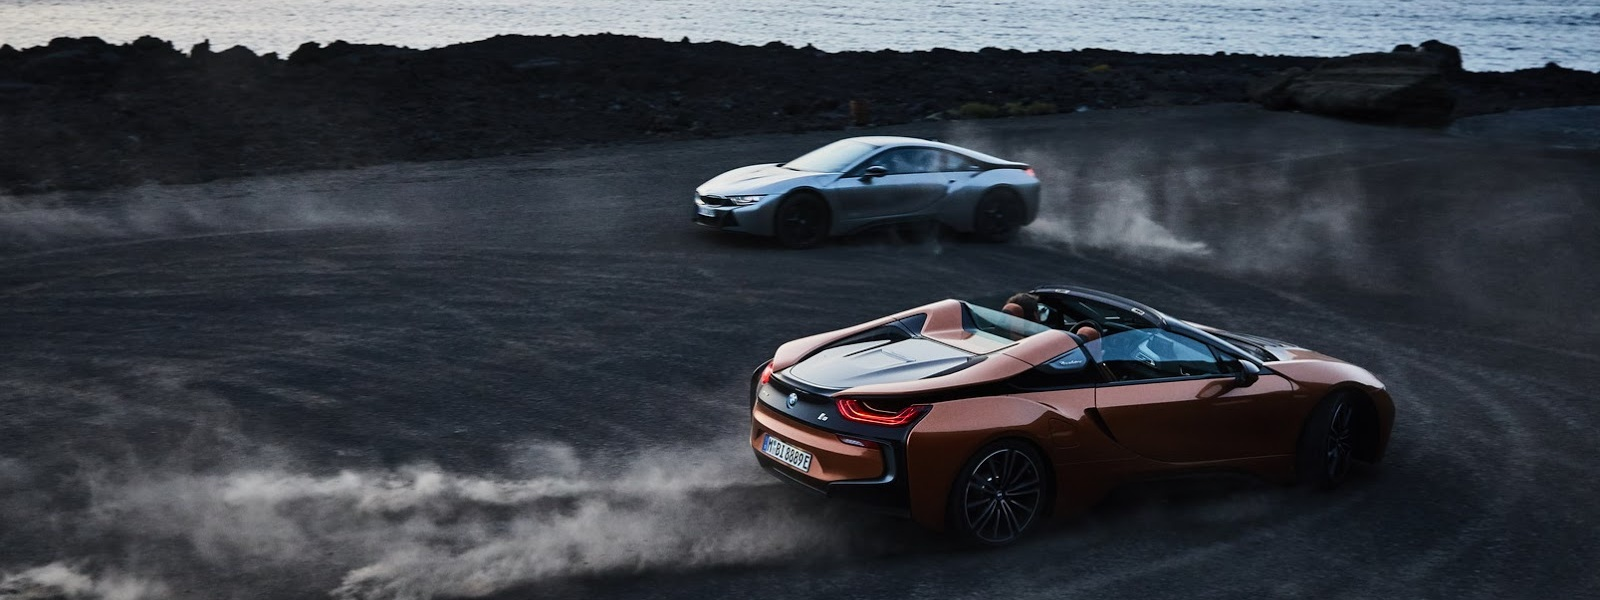 2019-BMW-i8-Roadster-Coupe-58.jpg